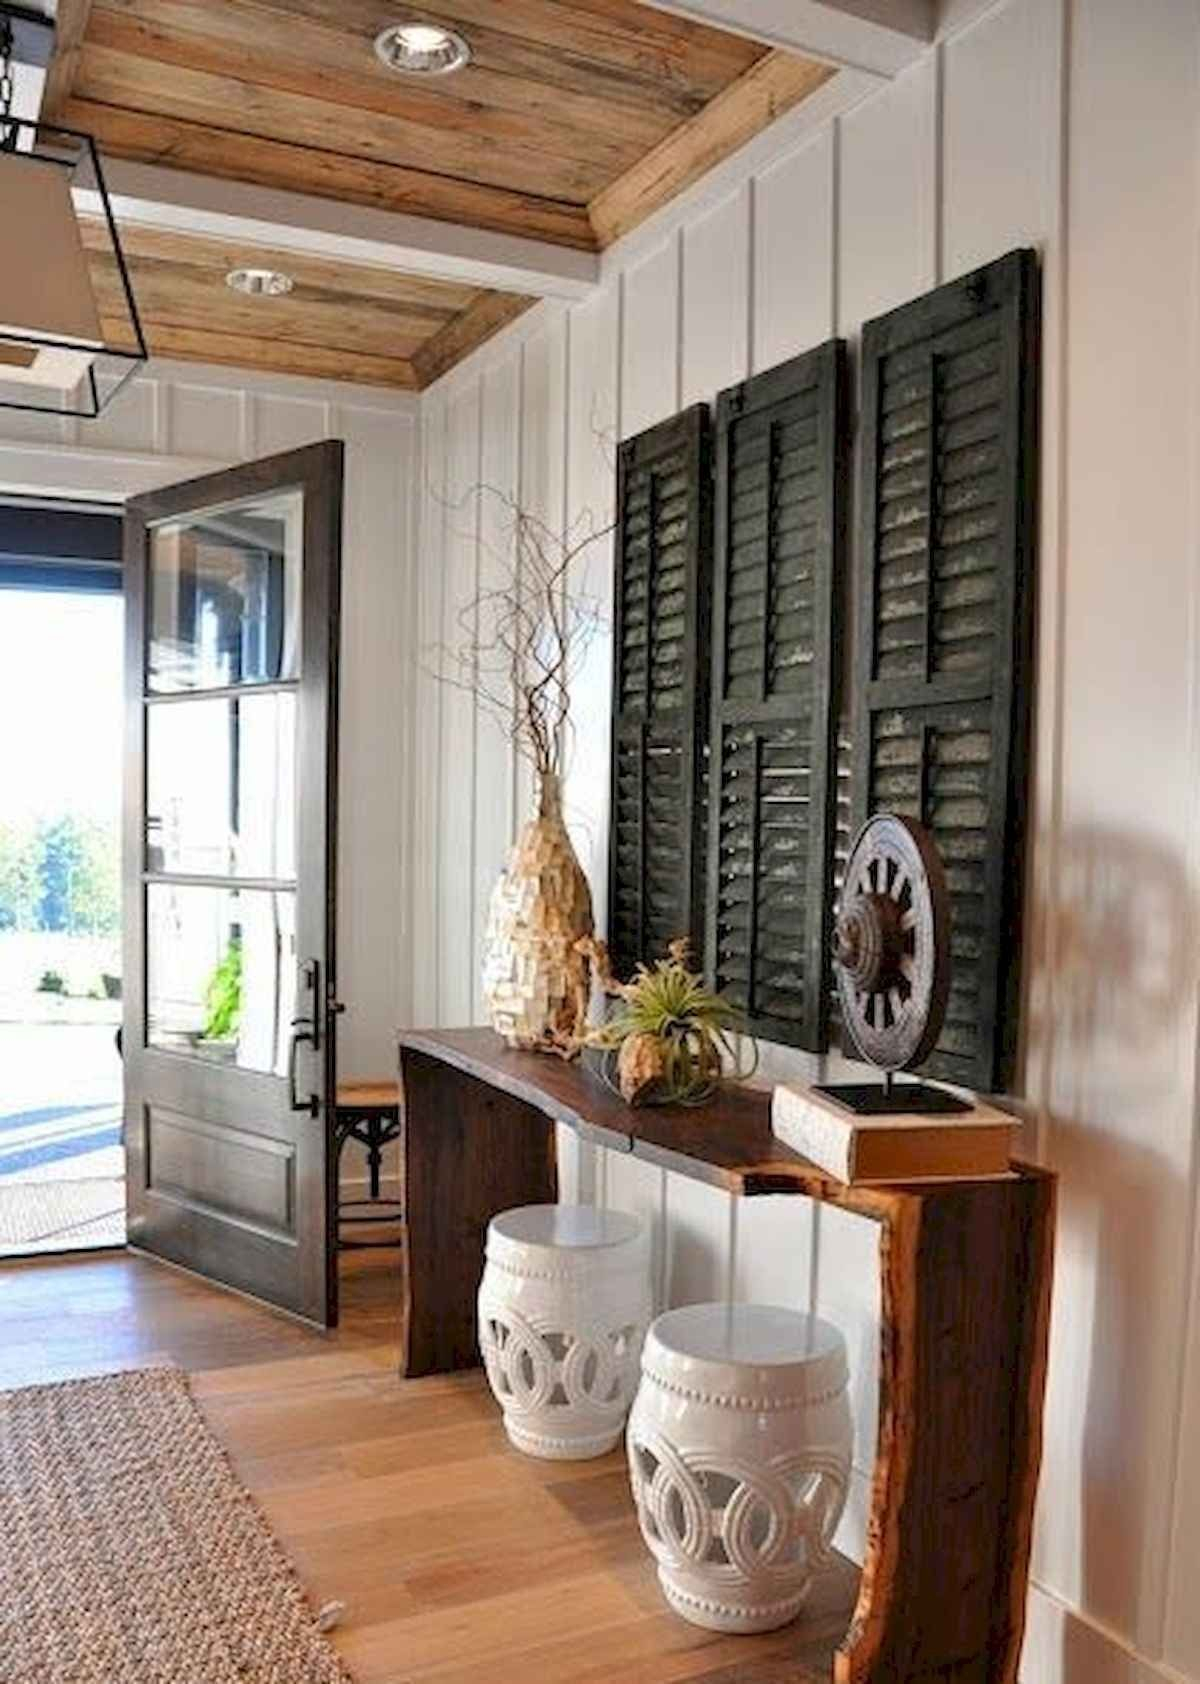 50 Stunning Farmhouse Entryway Design Ideas In 2020 | Entry Pertaining To Svendsen Ceramic Garden Stools (View 19 of 25)